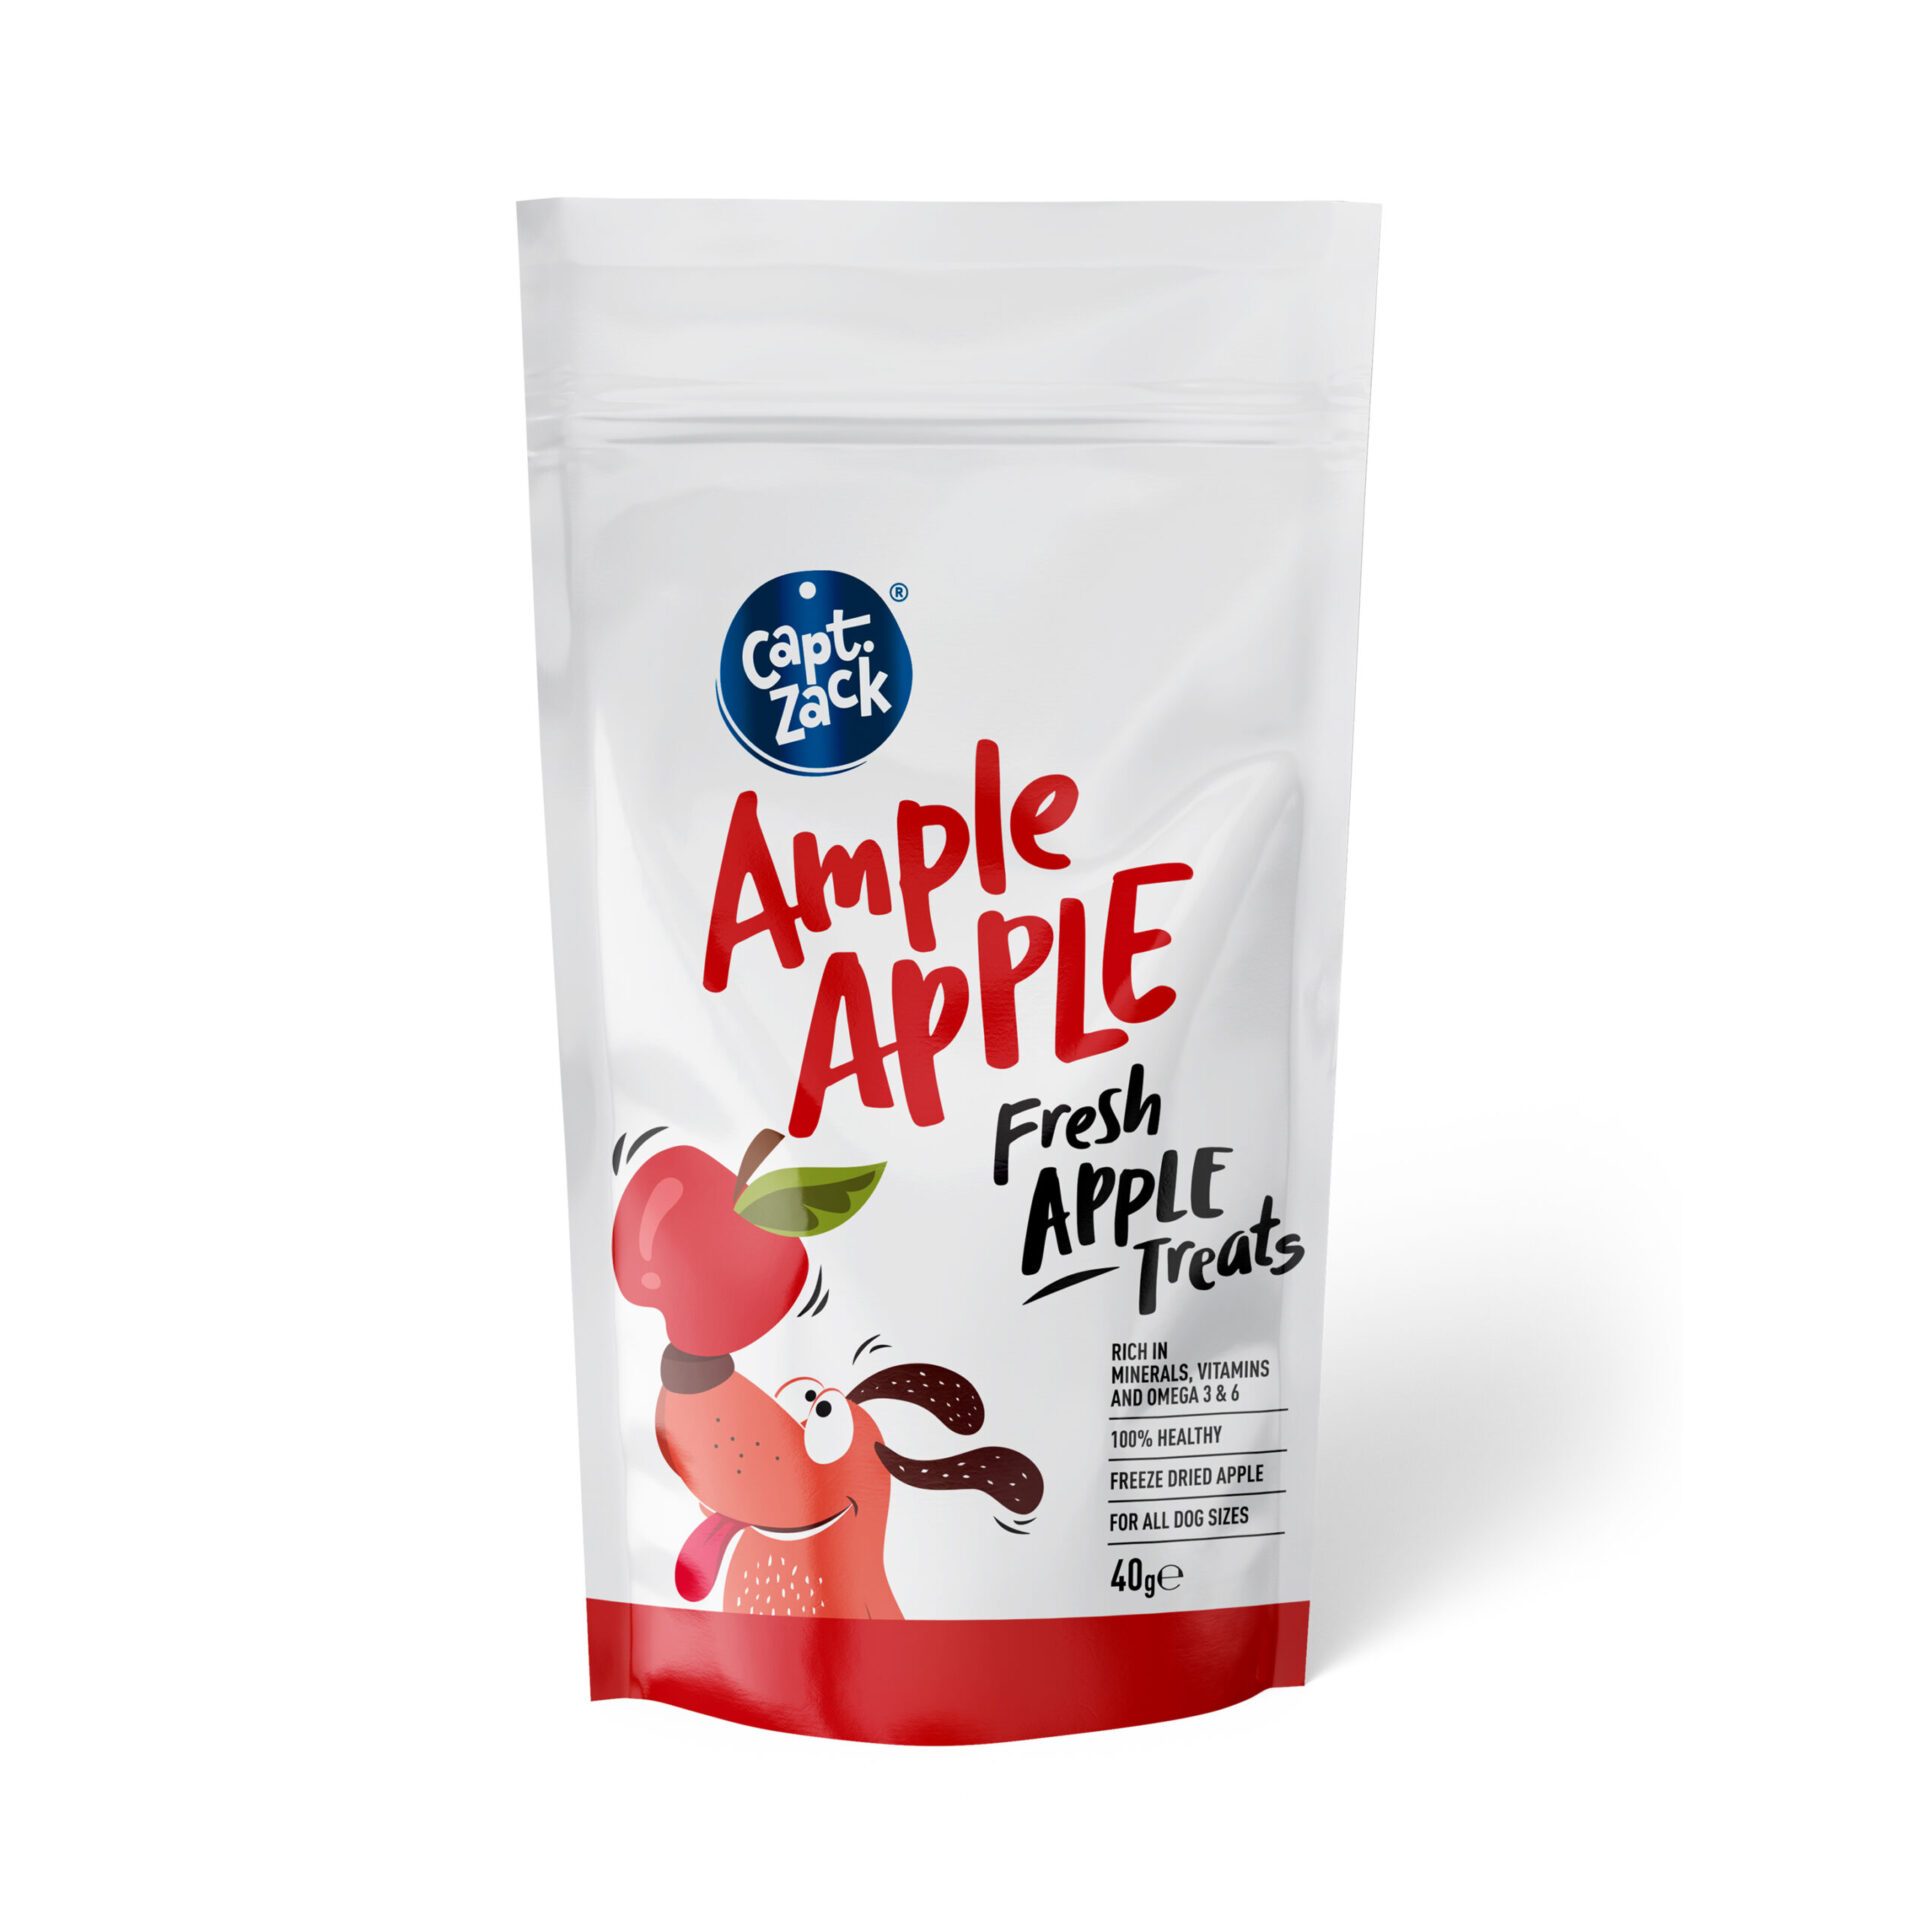 Ample Apple_Front Image For Amazon